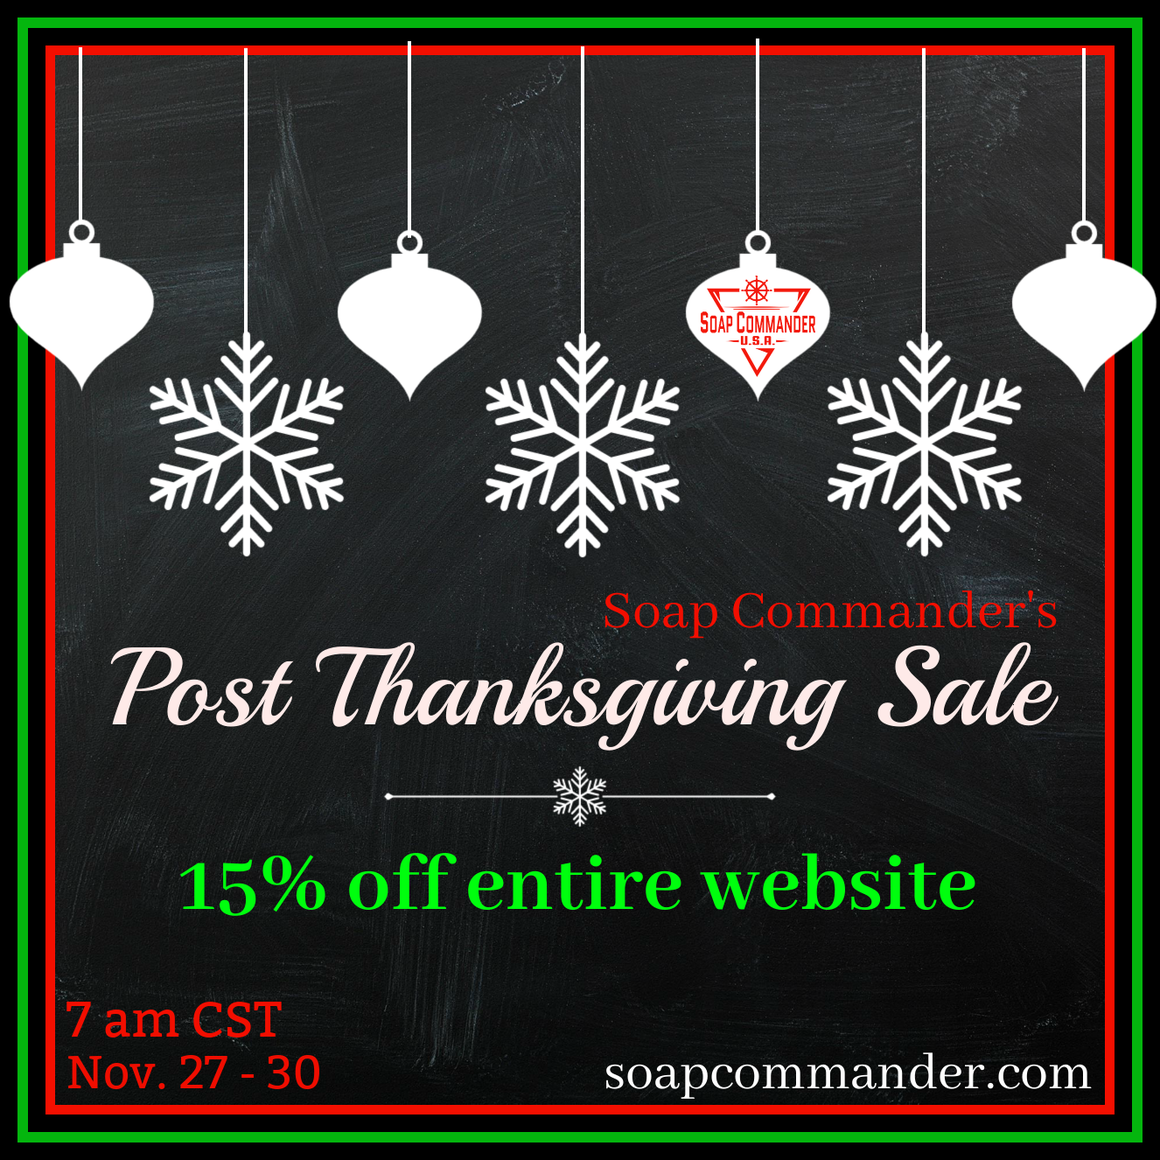 Soap Commander Post Thanksgiving Sale graphic 15% off entire website